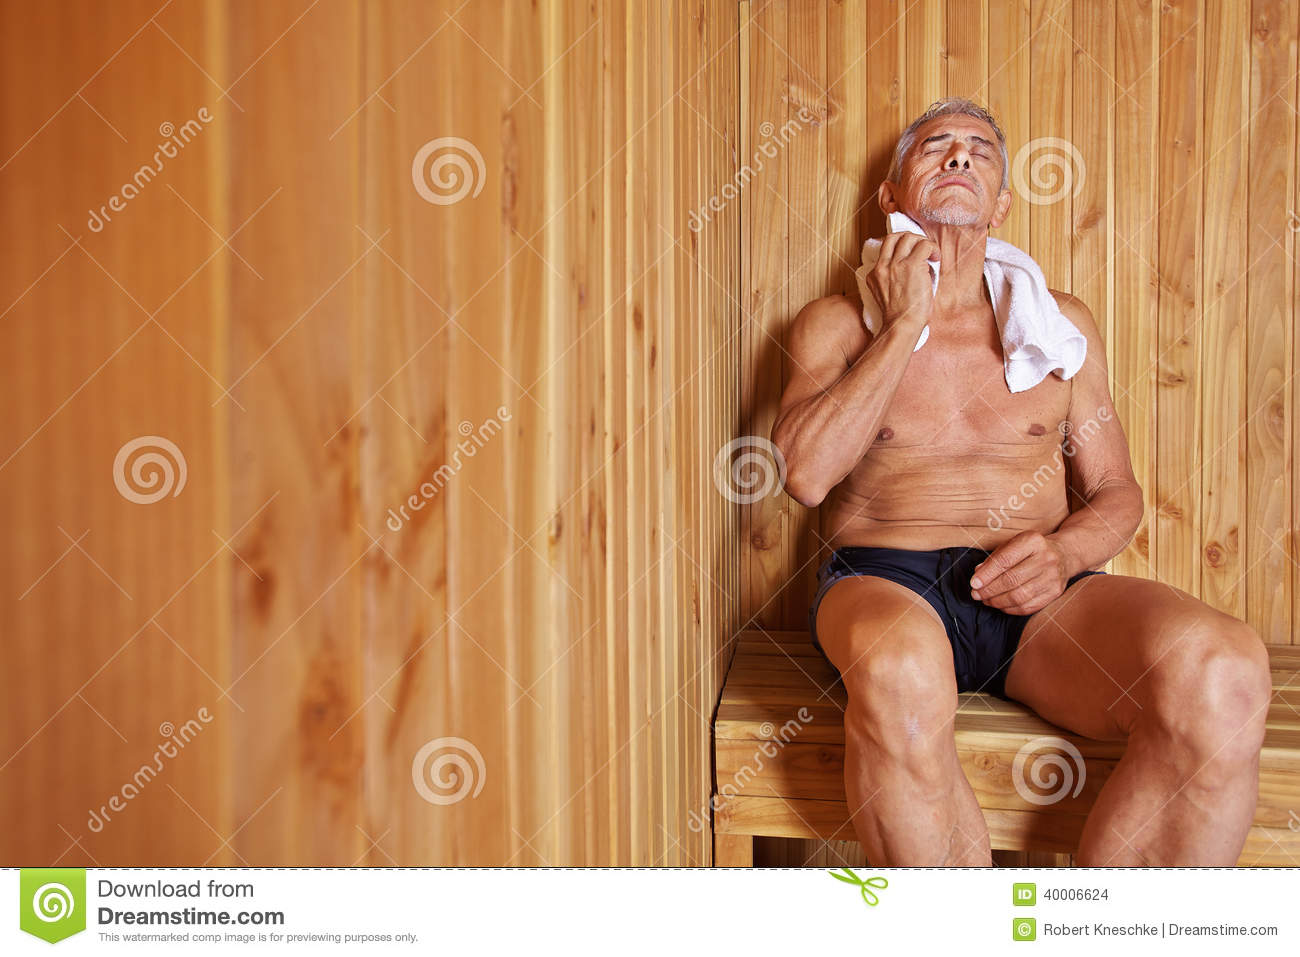 The sauna time will be boiled